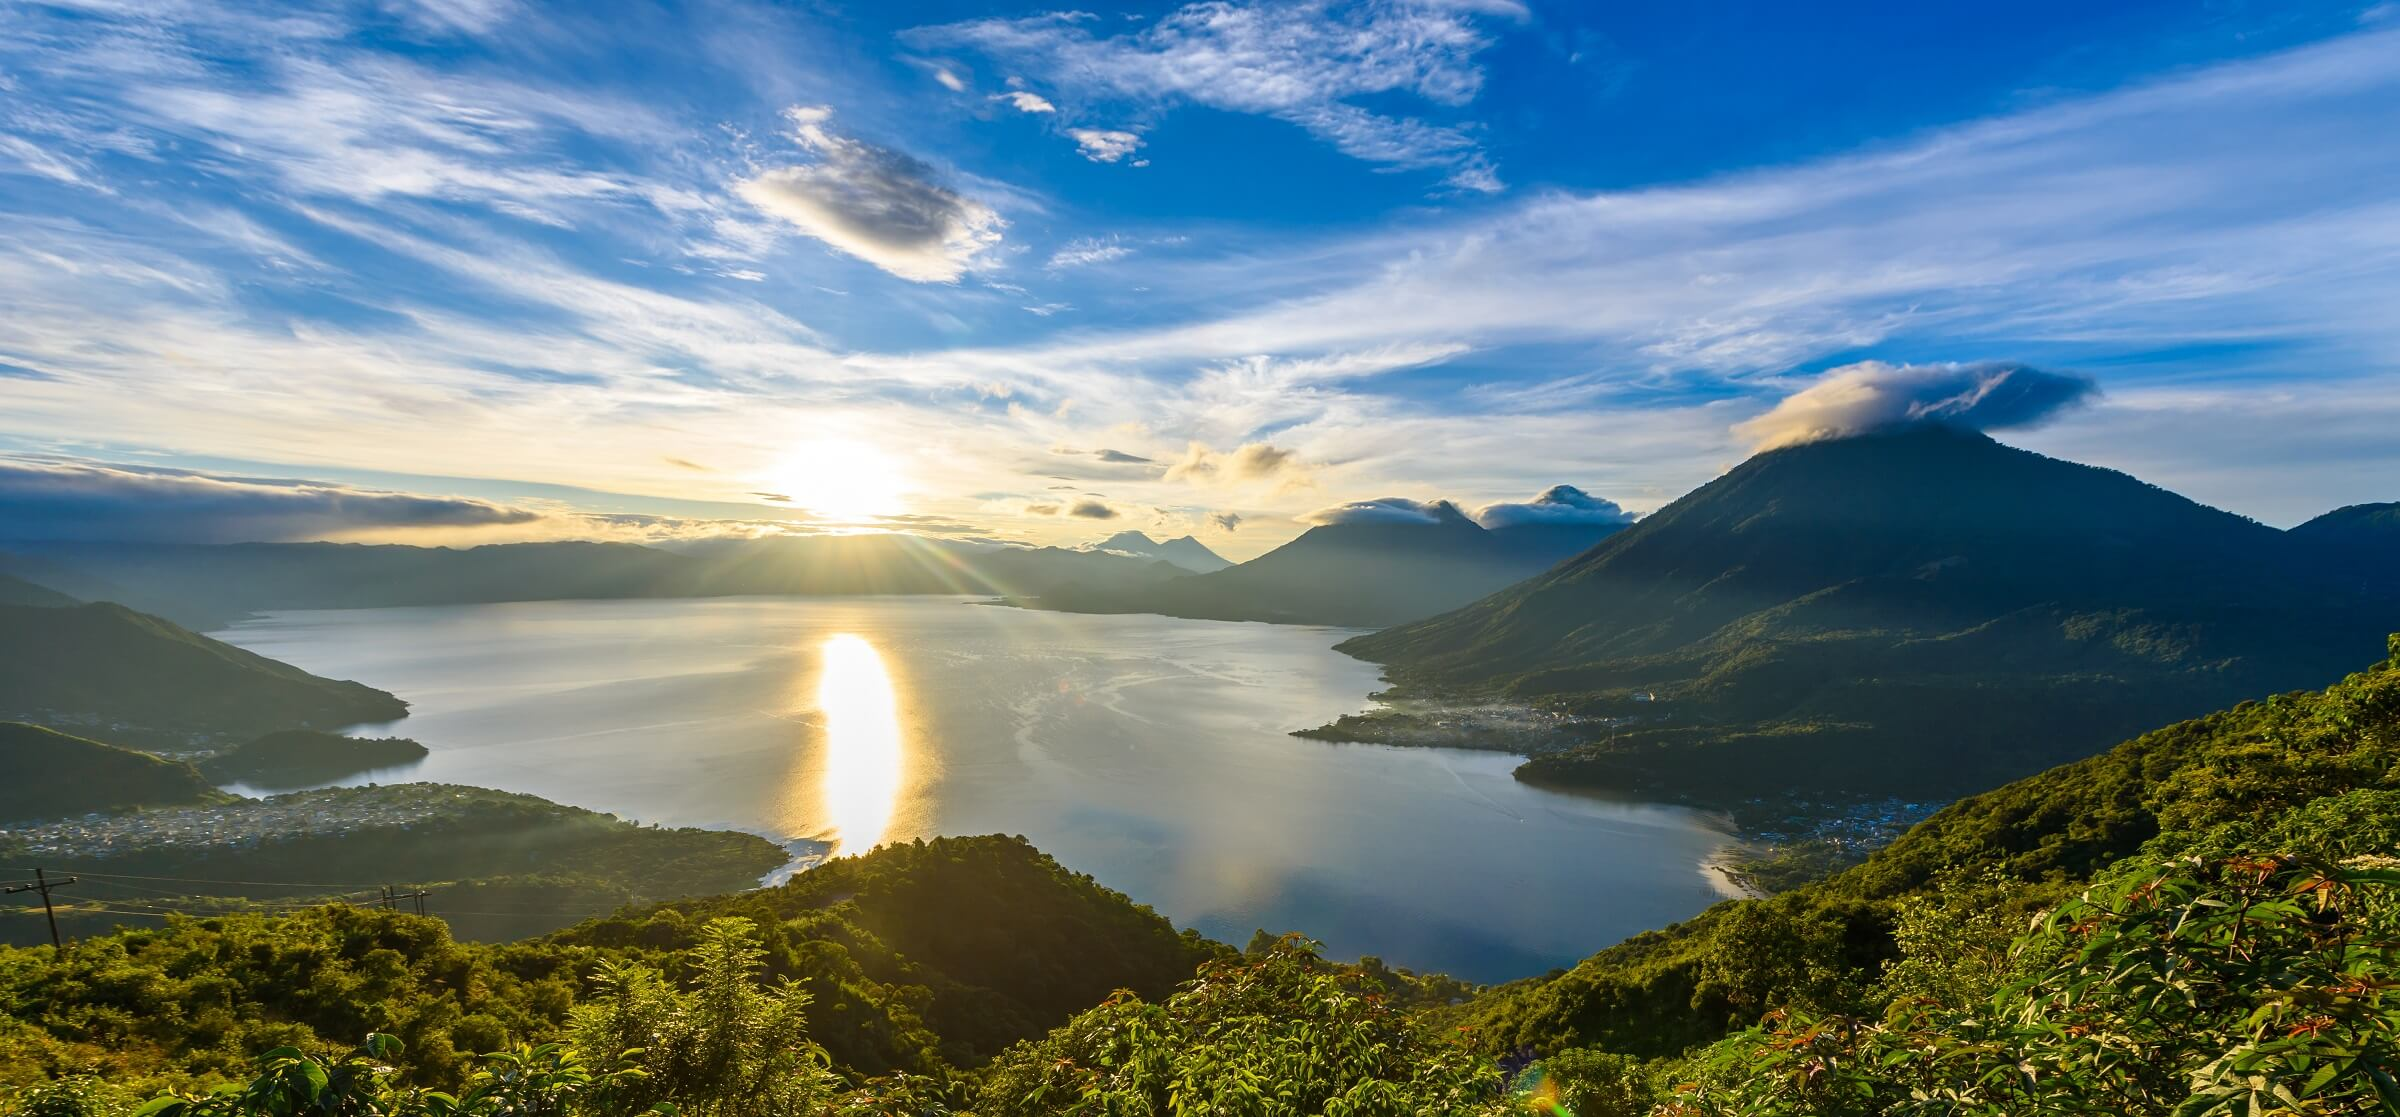 Sunrise-at-lake-Atitlan-Guatemala_h3agre.jpg